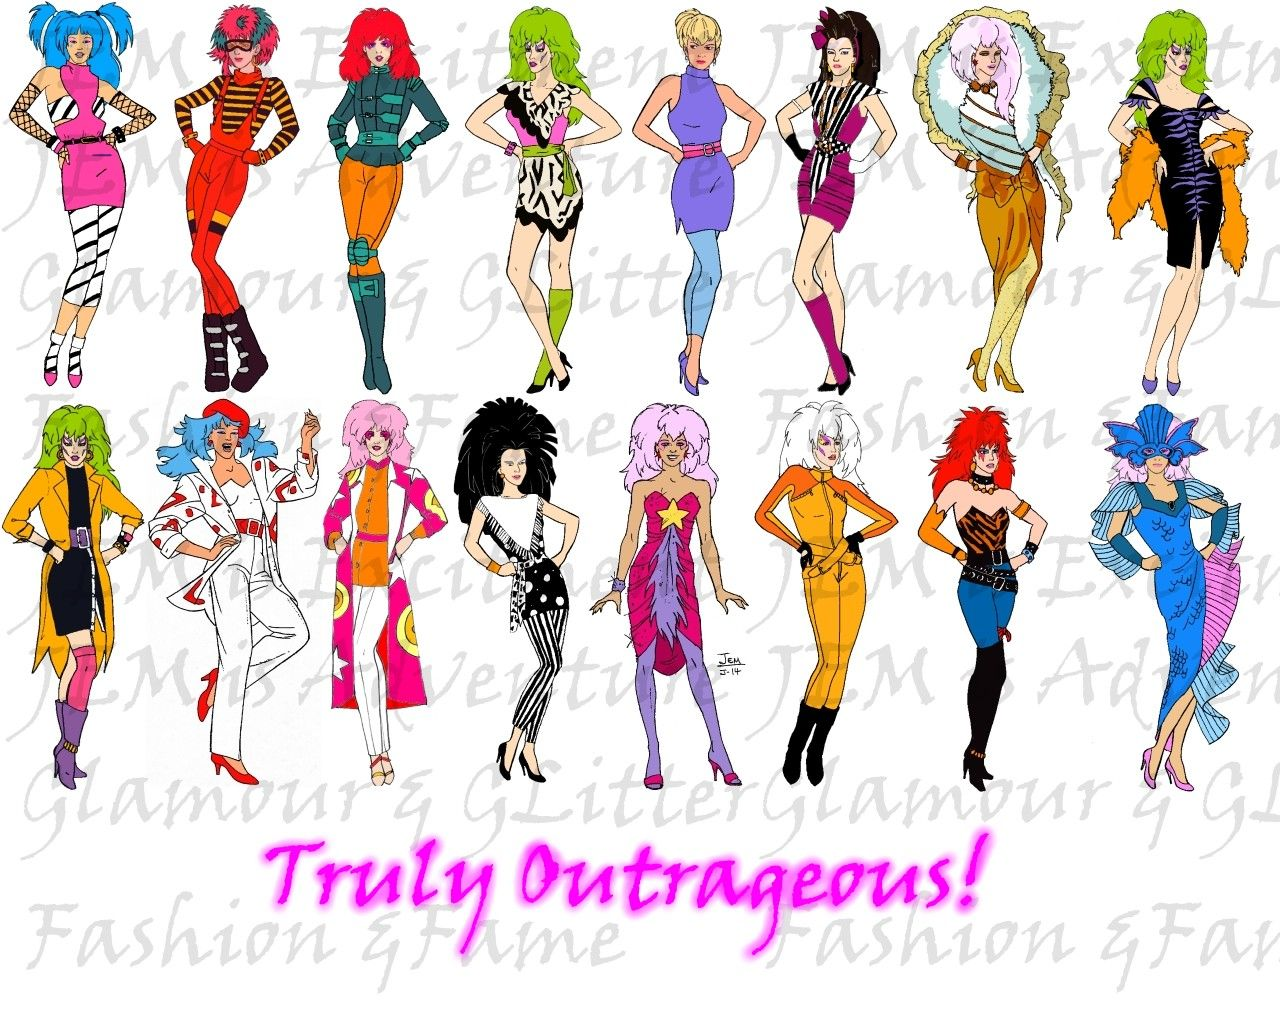 Jem Cartoon Character Outfits 80 S Cartoon Jem Is Finally On Tv Again Jem And The Holograms Jem Cartoon Gem And The Holograms